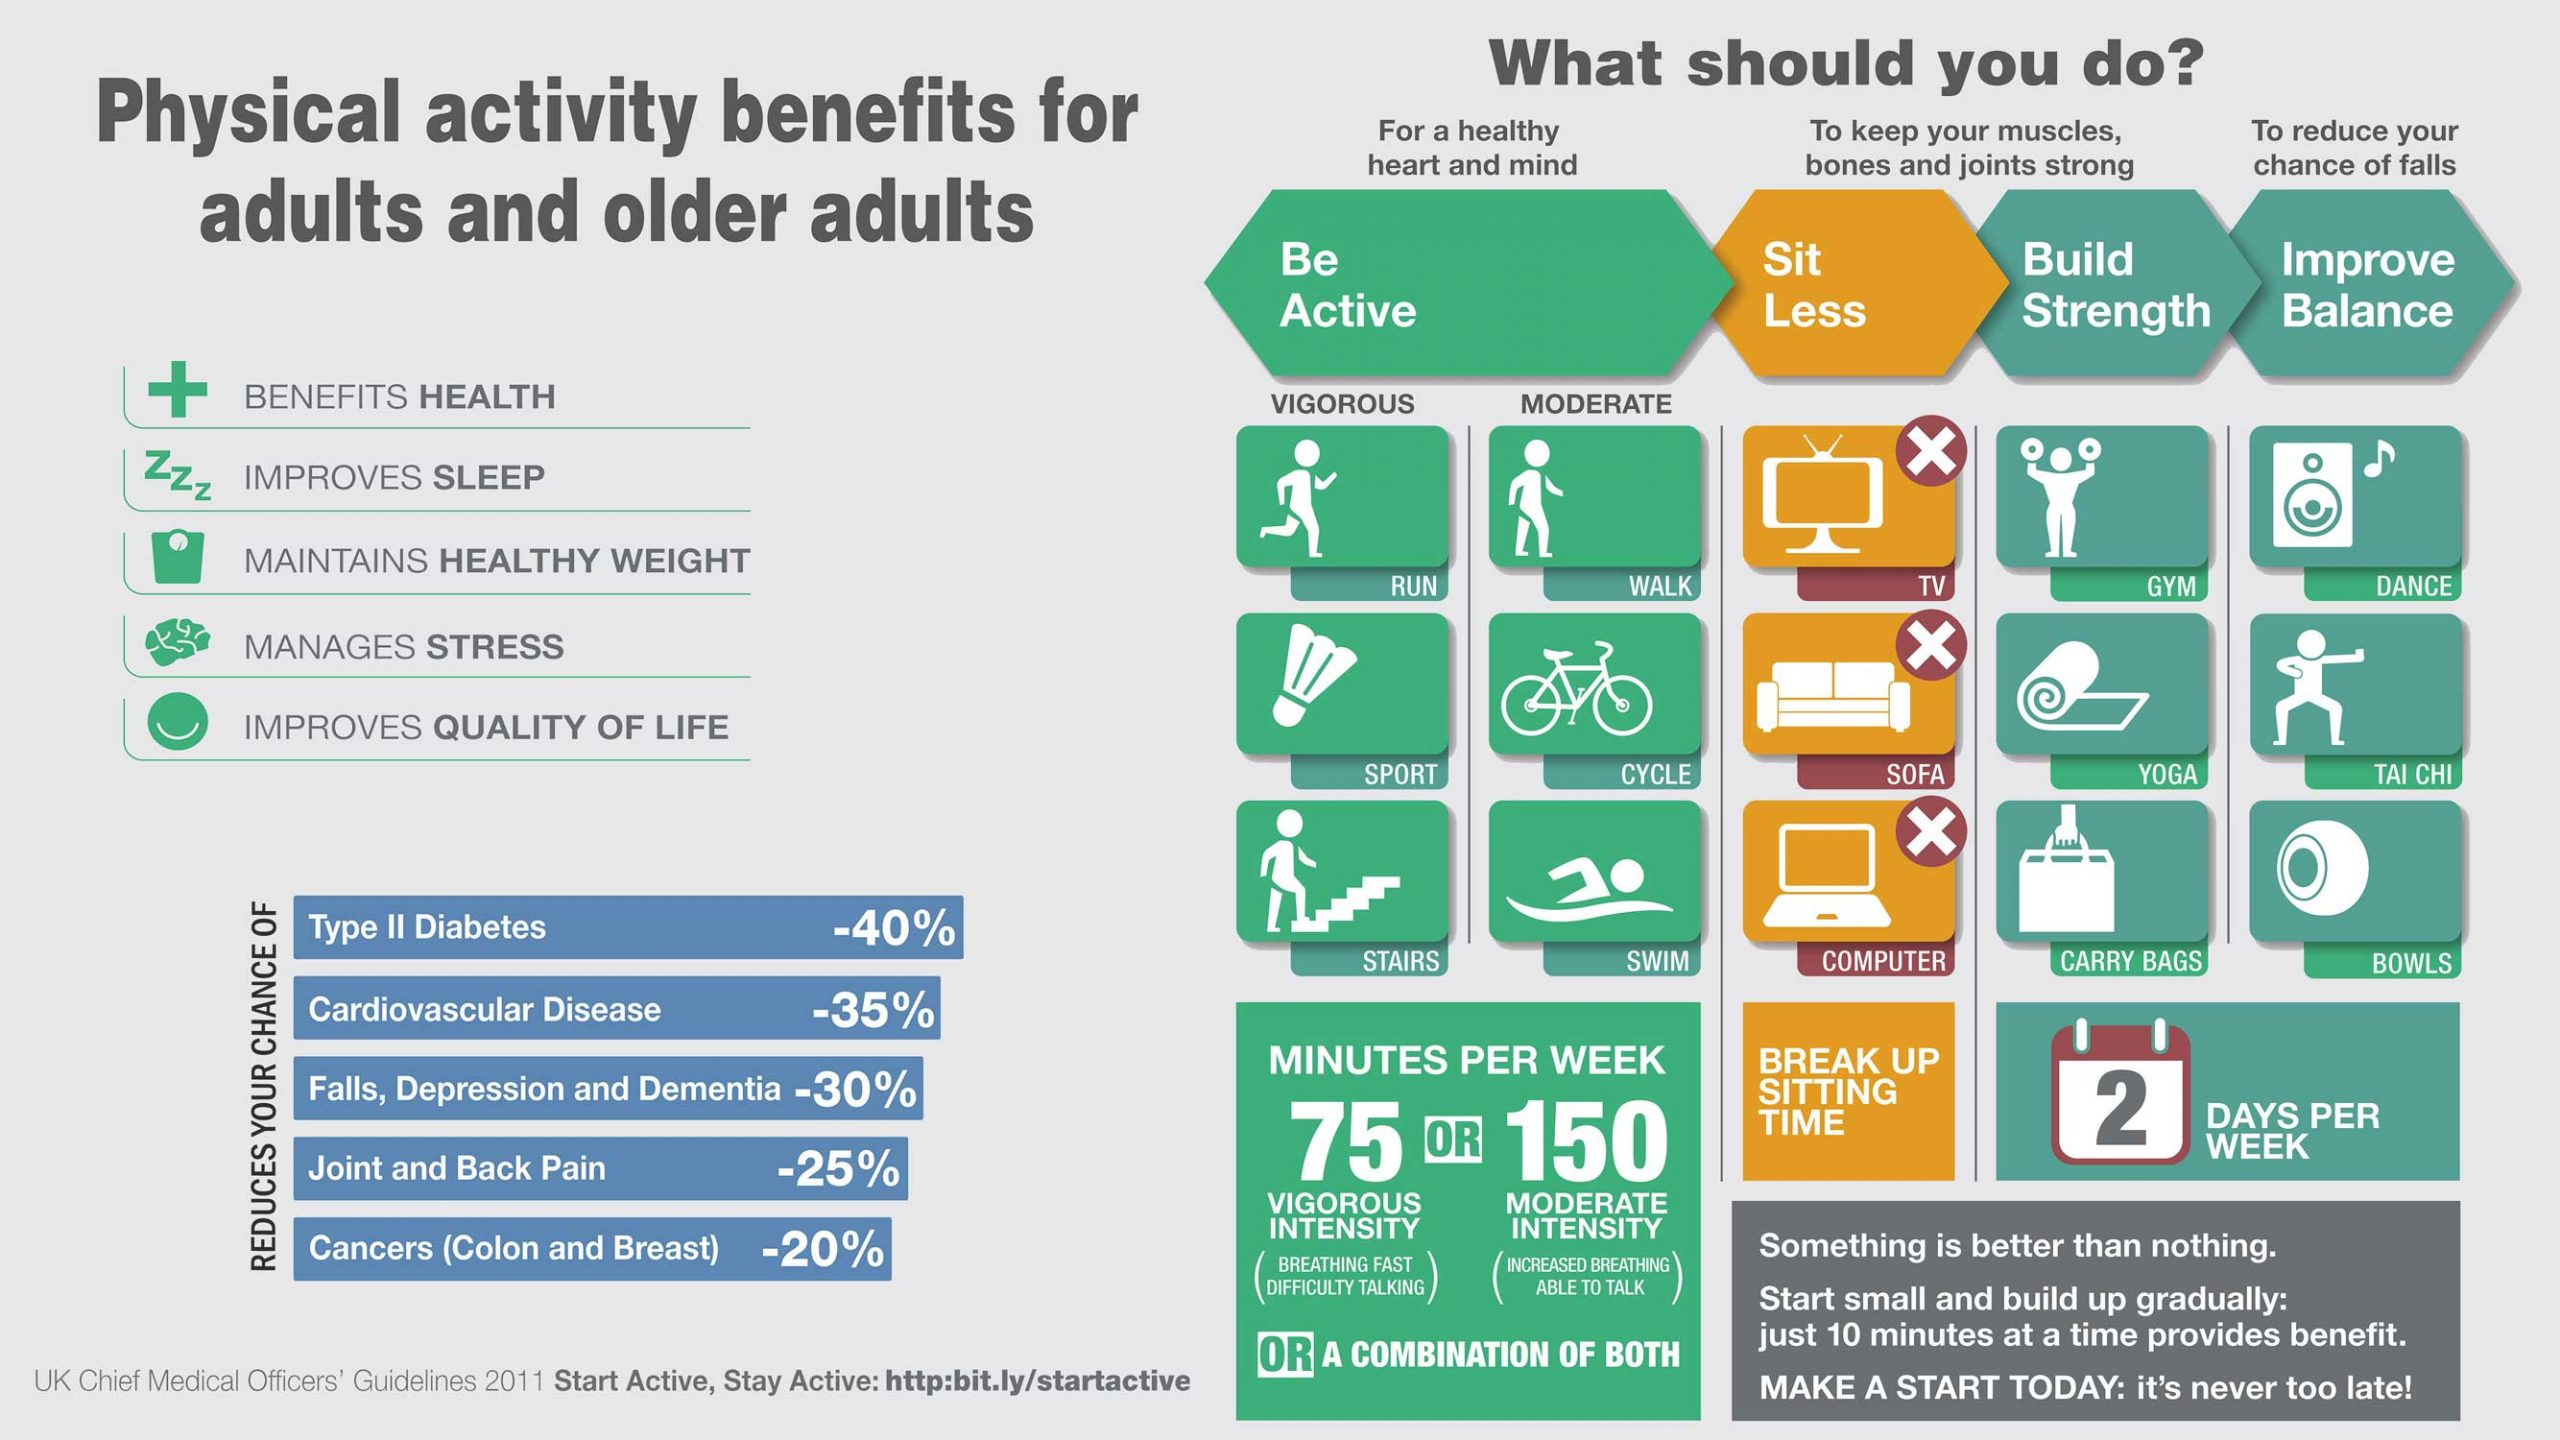 PhysicalBenefits-Adults-Older